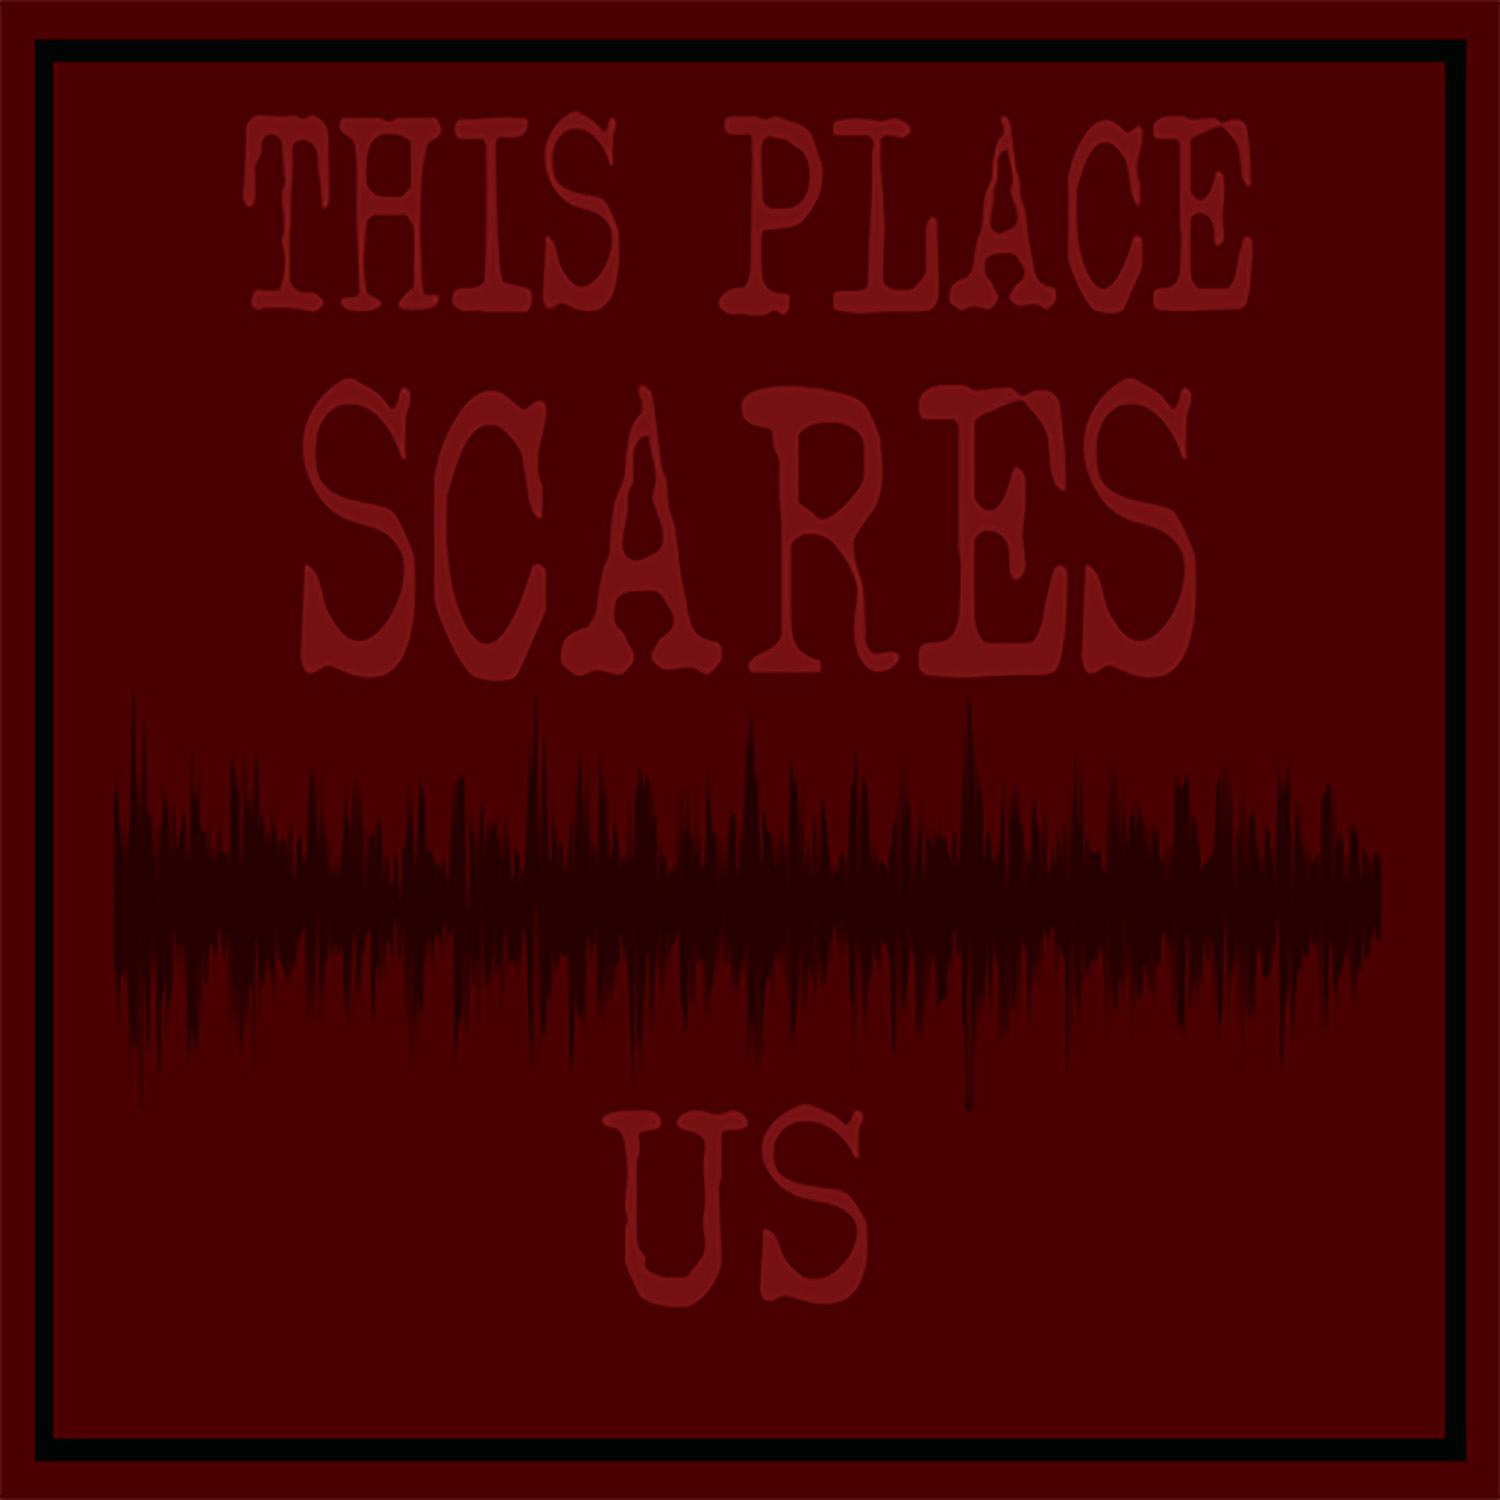 This Place Scares Us - A Podcast show art